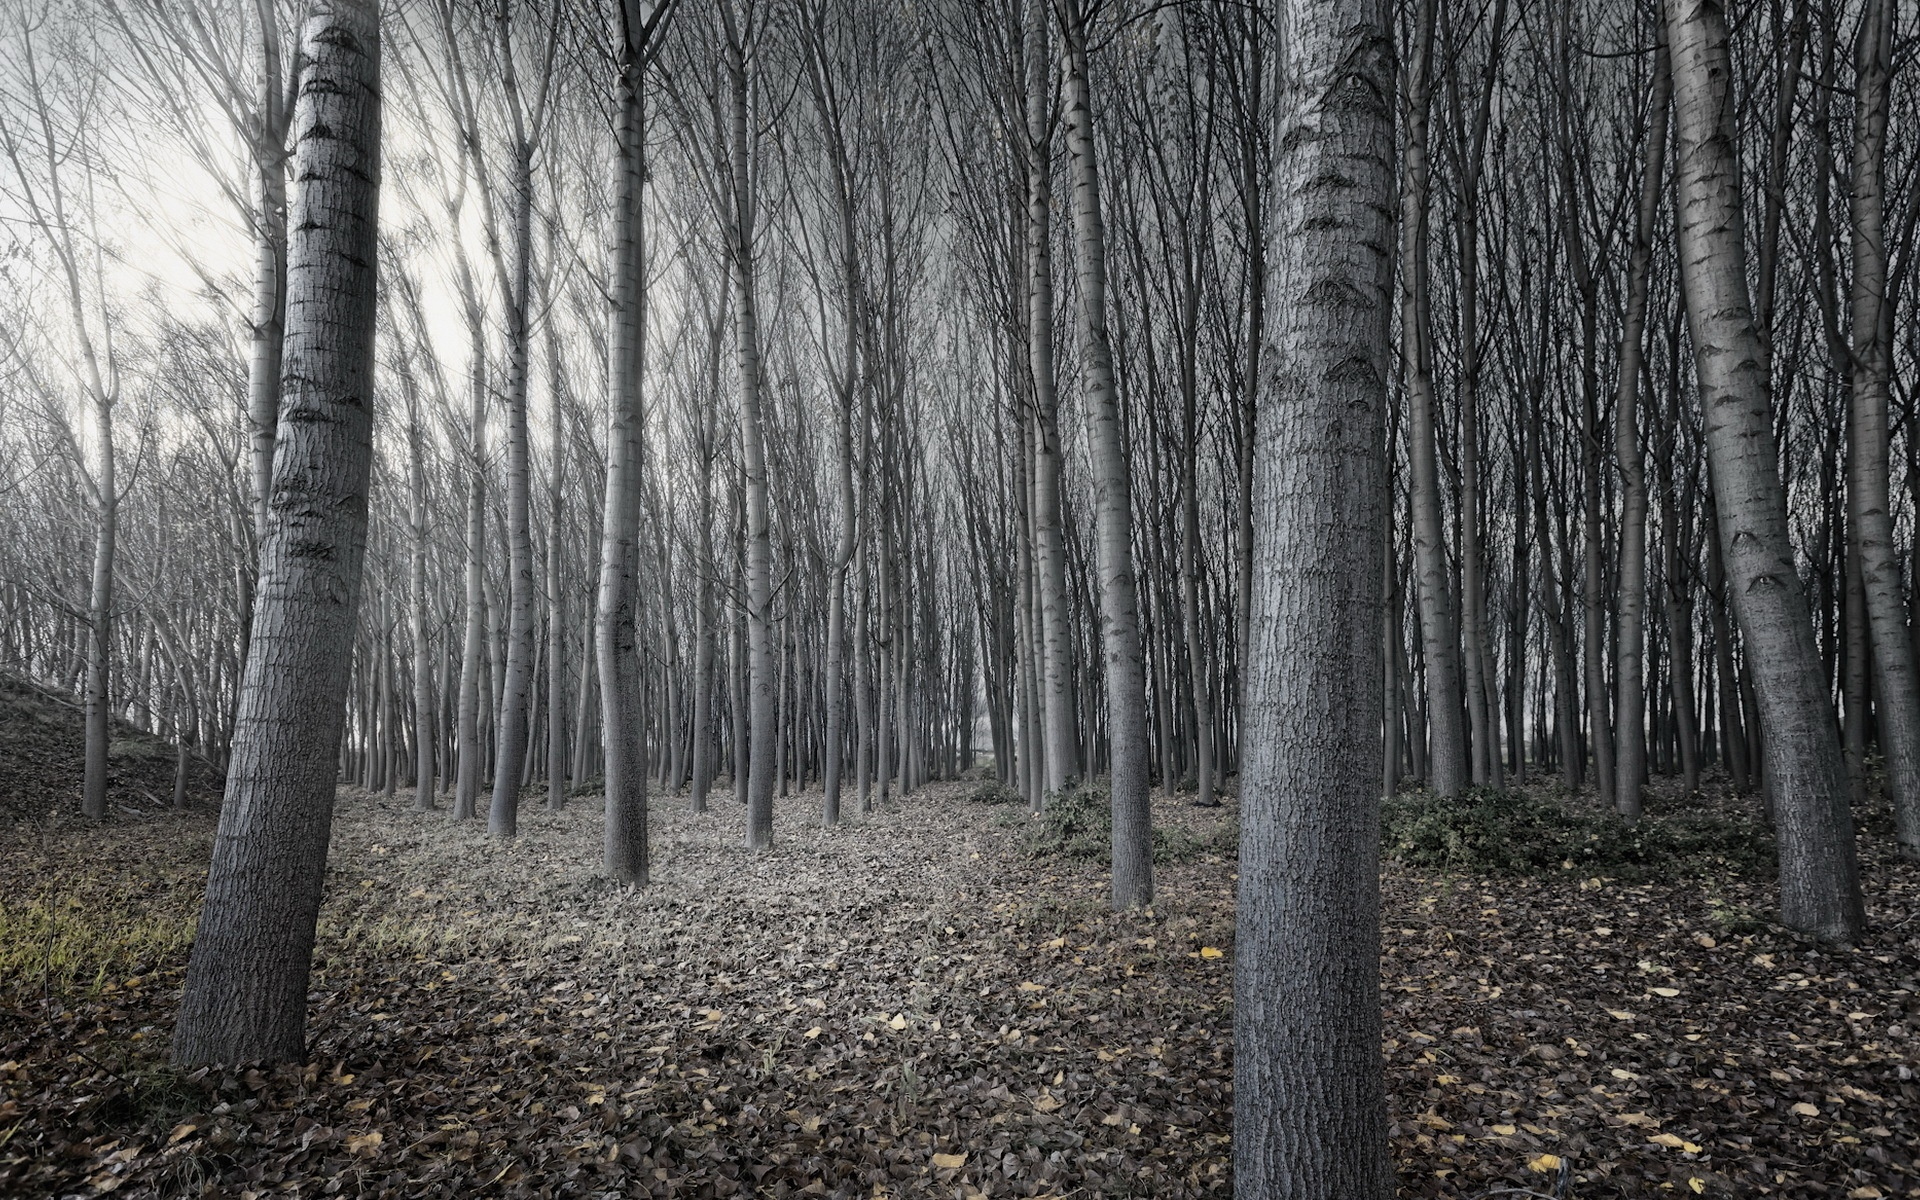 Black and white tree forest 1920 x 1200 download close